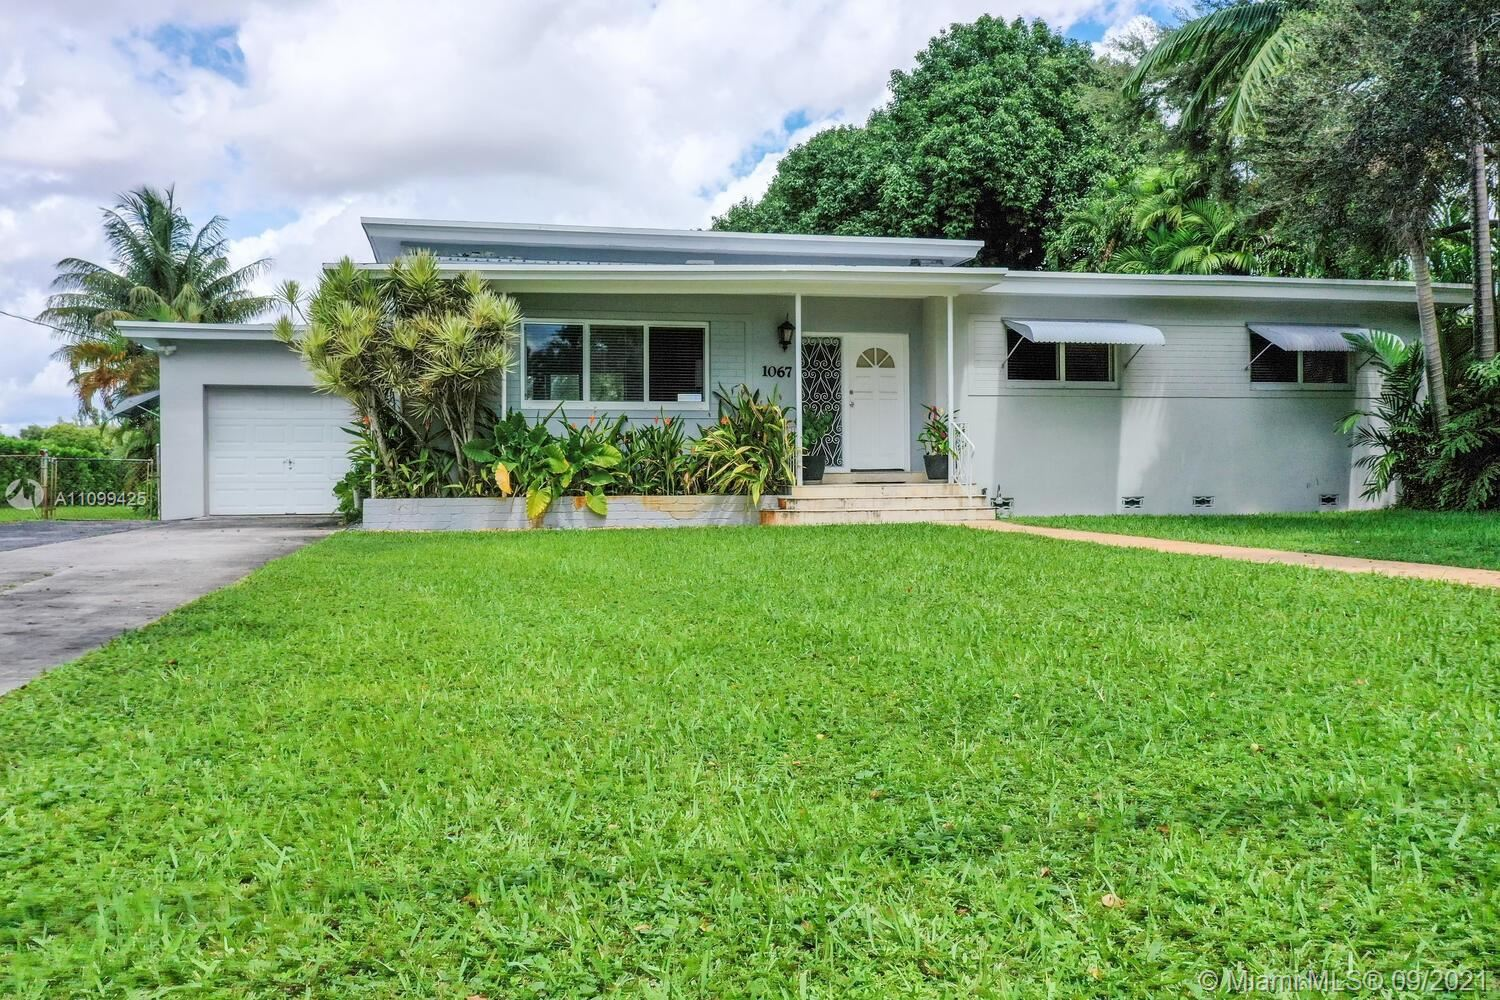 1067 Hunting Lodge Dr, Miami Springs, FL 33166 - #: A11099425